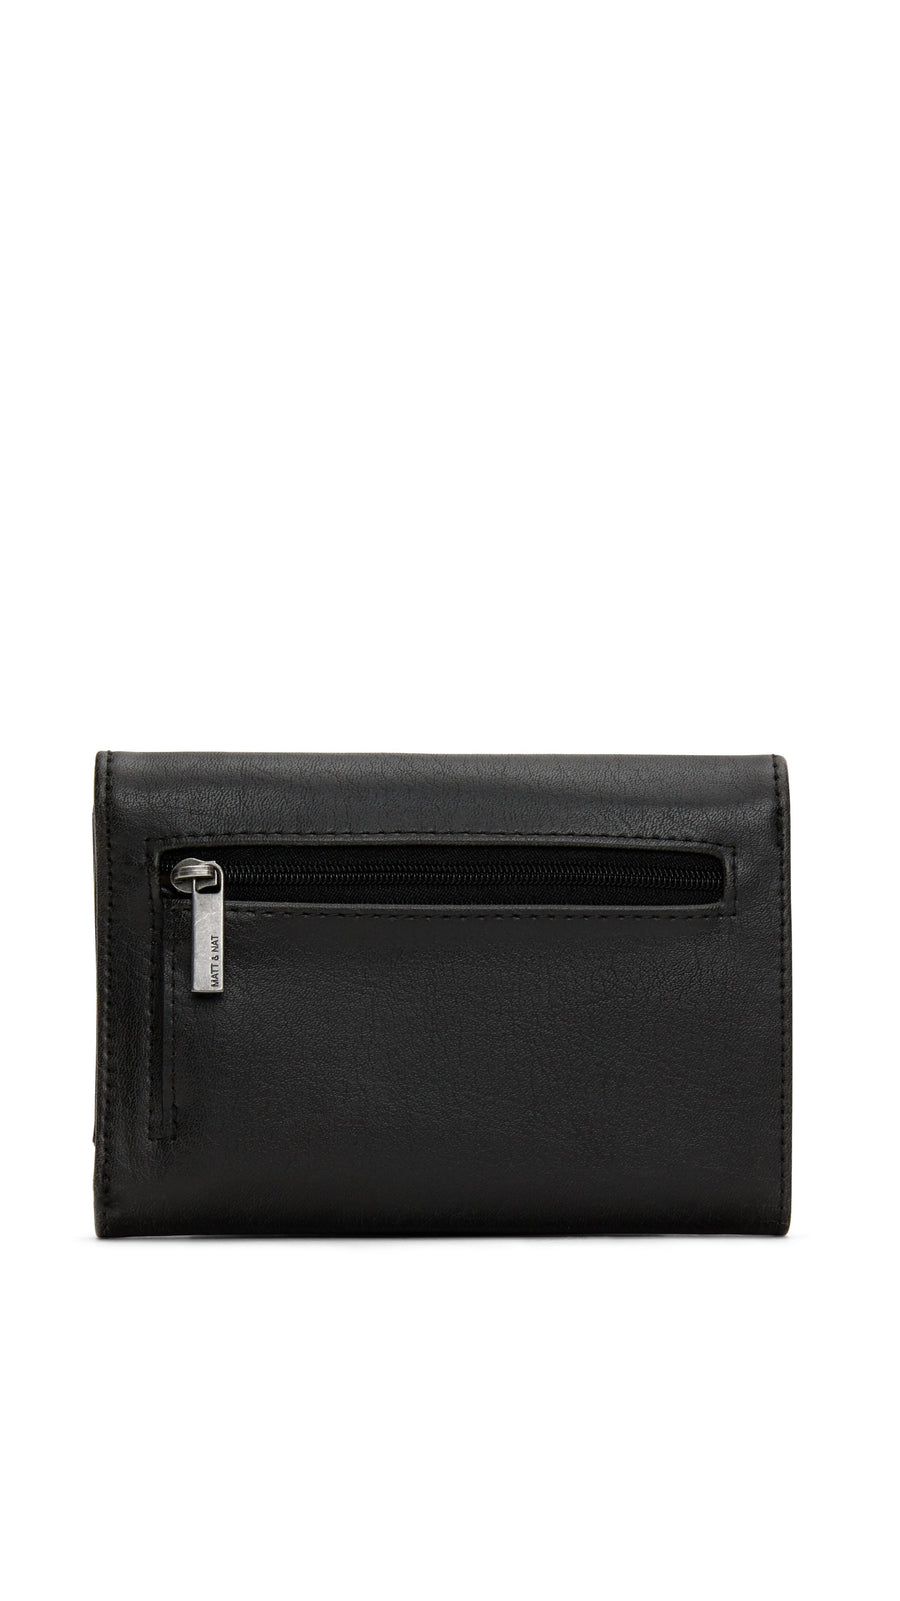 Matt & Nat Vera Small Wallet in Black with Silver Hardware